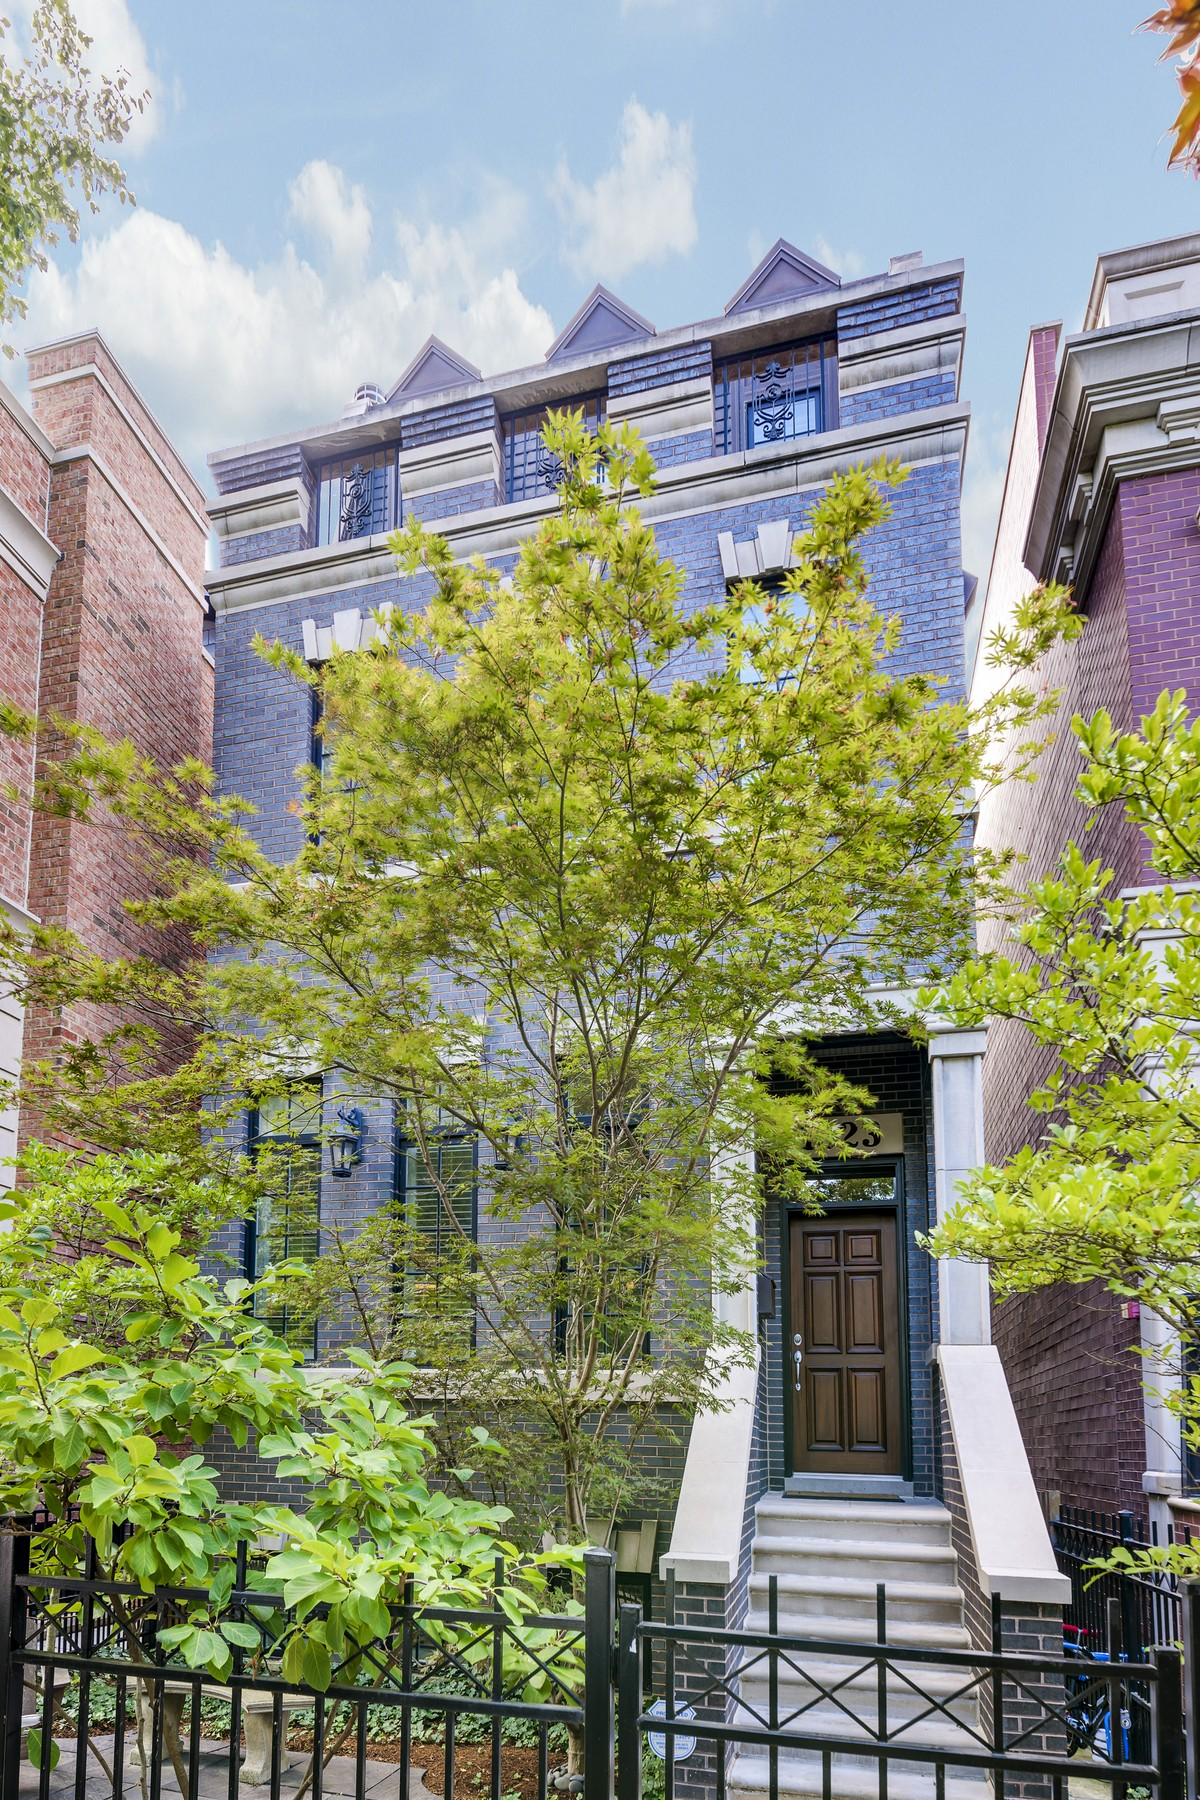 Single Family Home for Sale at Amazing Lakeview Home 1323 W Melrose Street Lakeview, Chicago, Illinois, 60657 United States